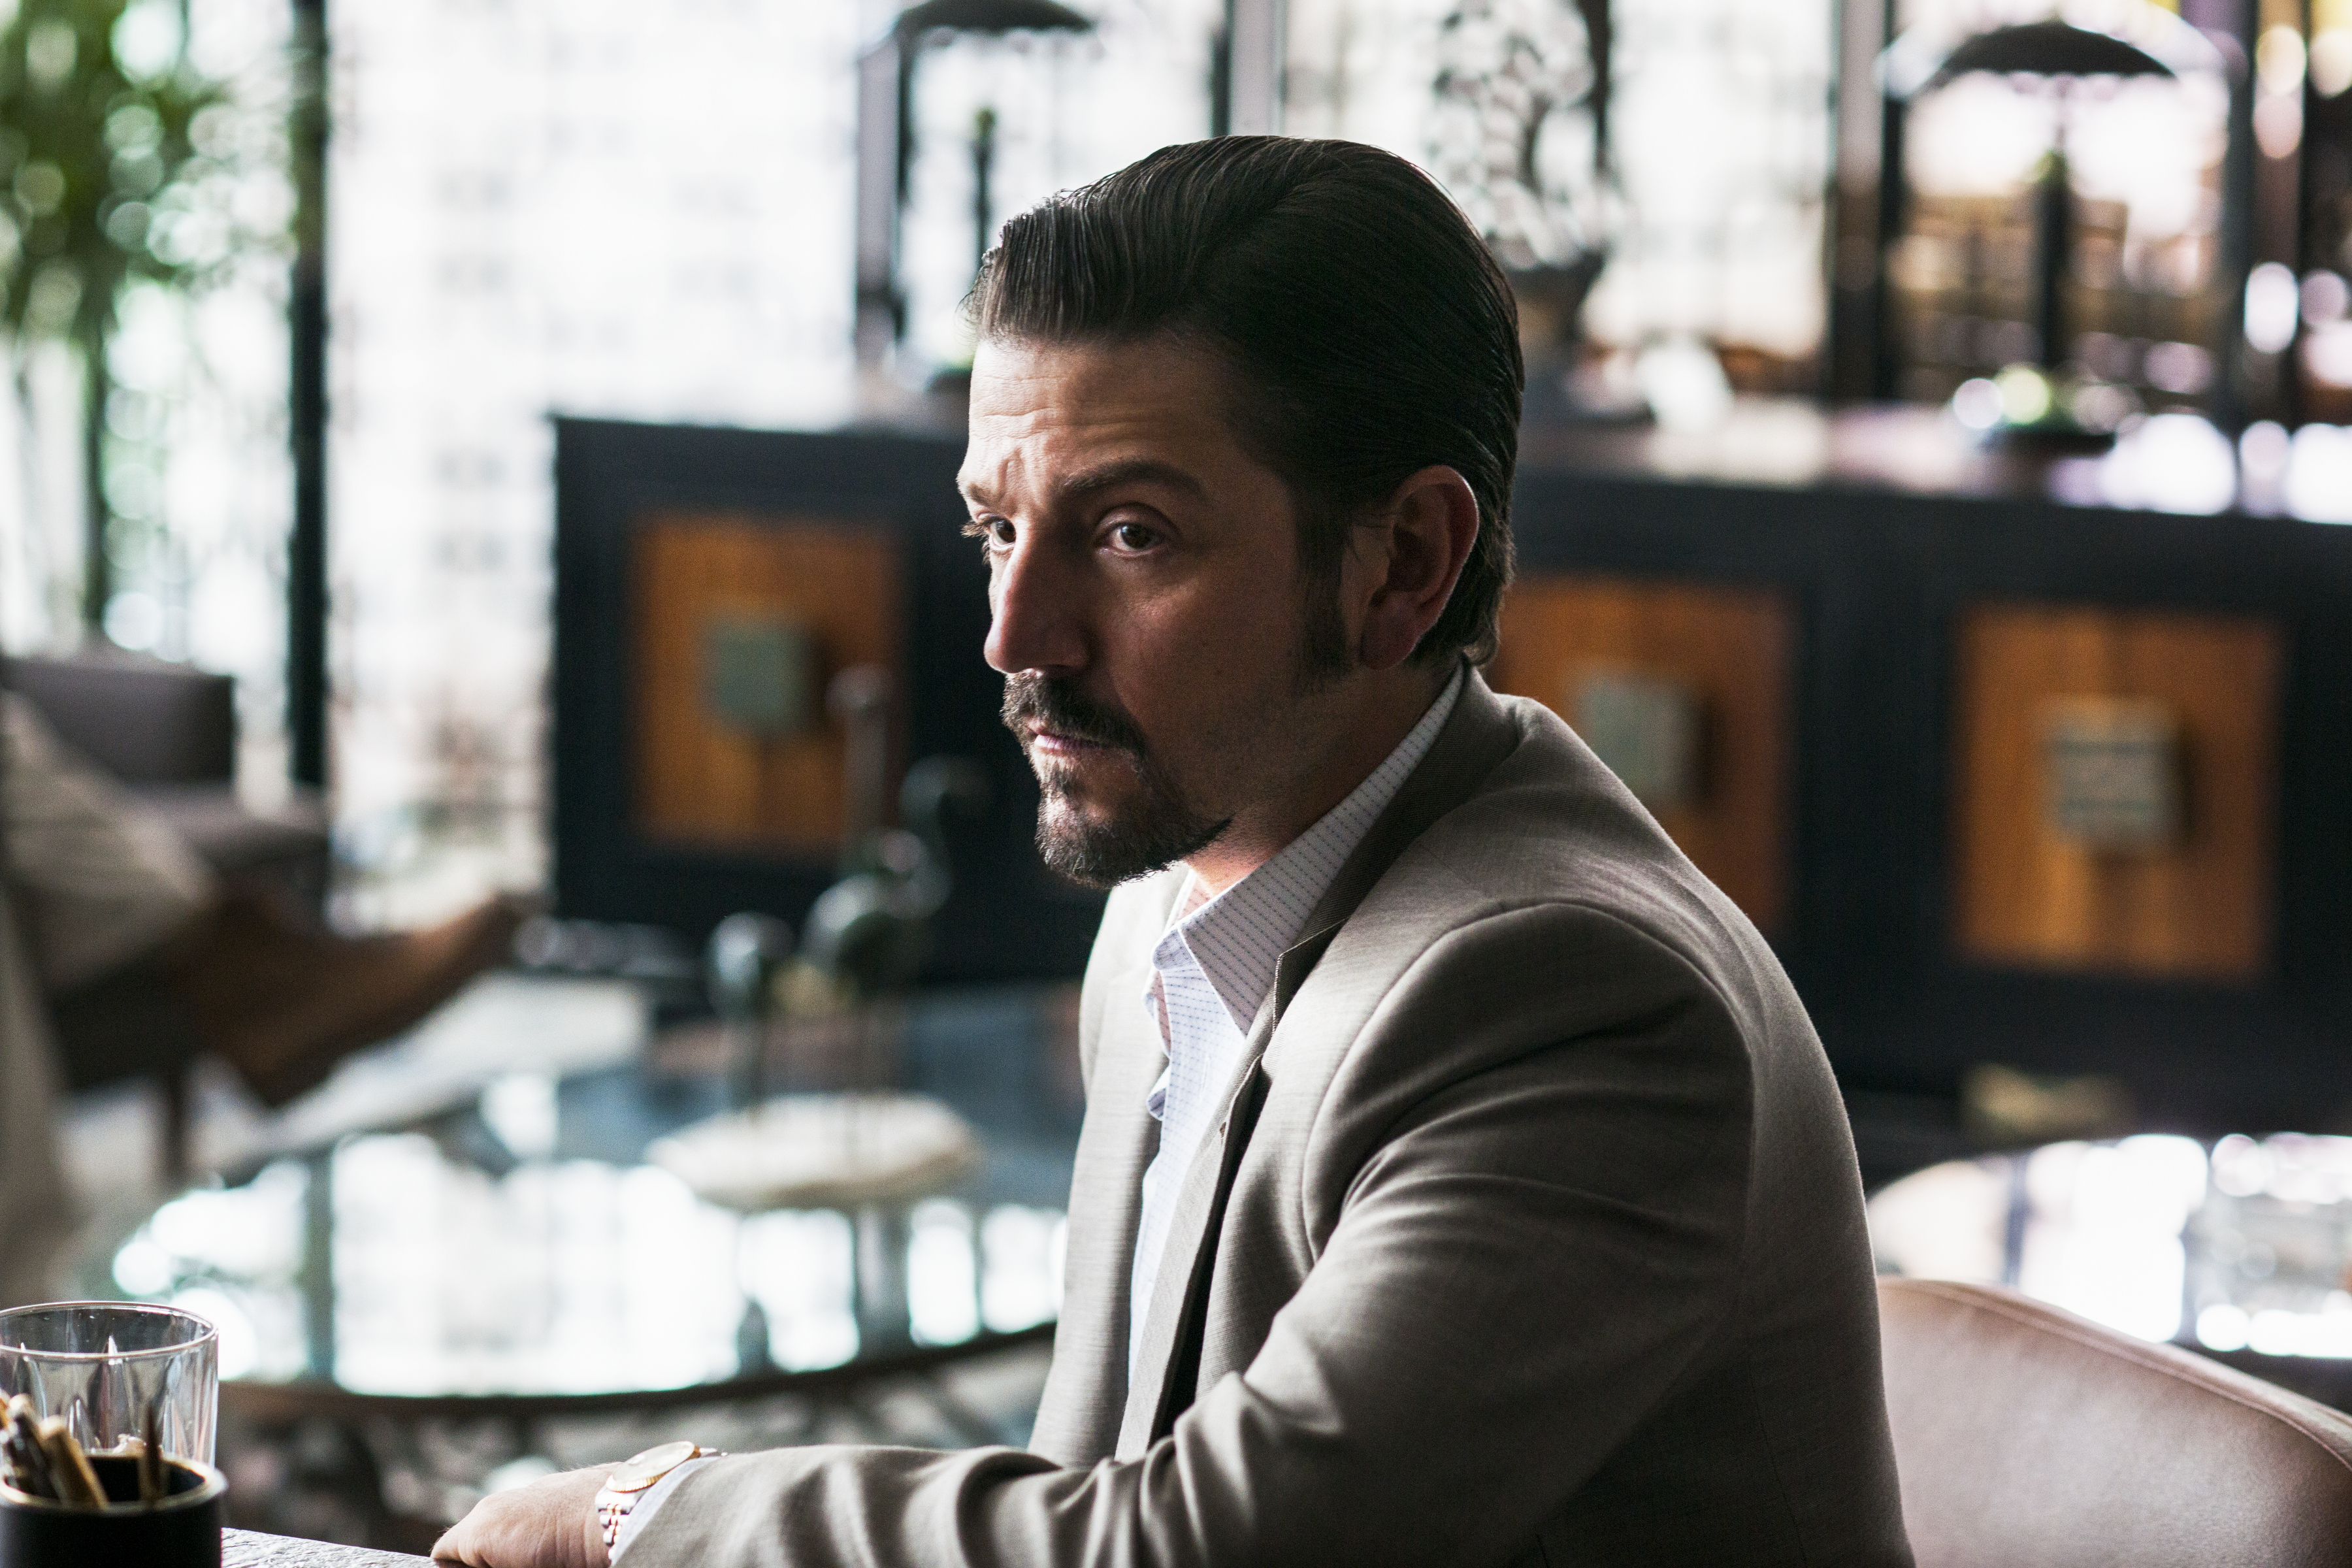 'Narcos: Mexico' Stars Diego Luna as a Founder of the Guadalajara Cartel